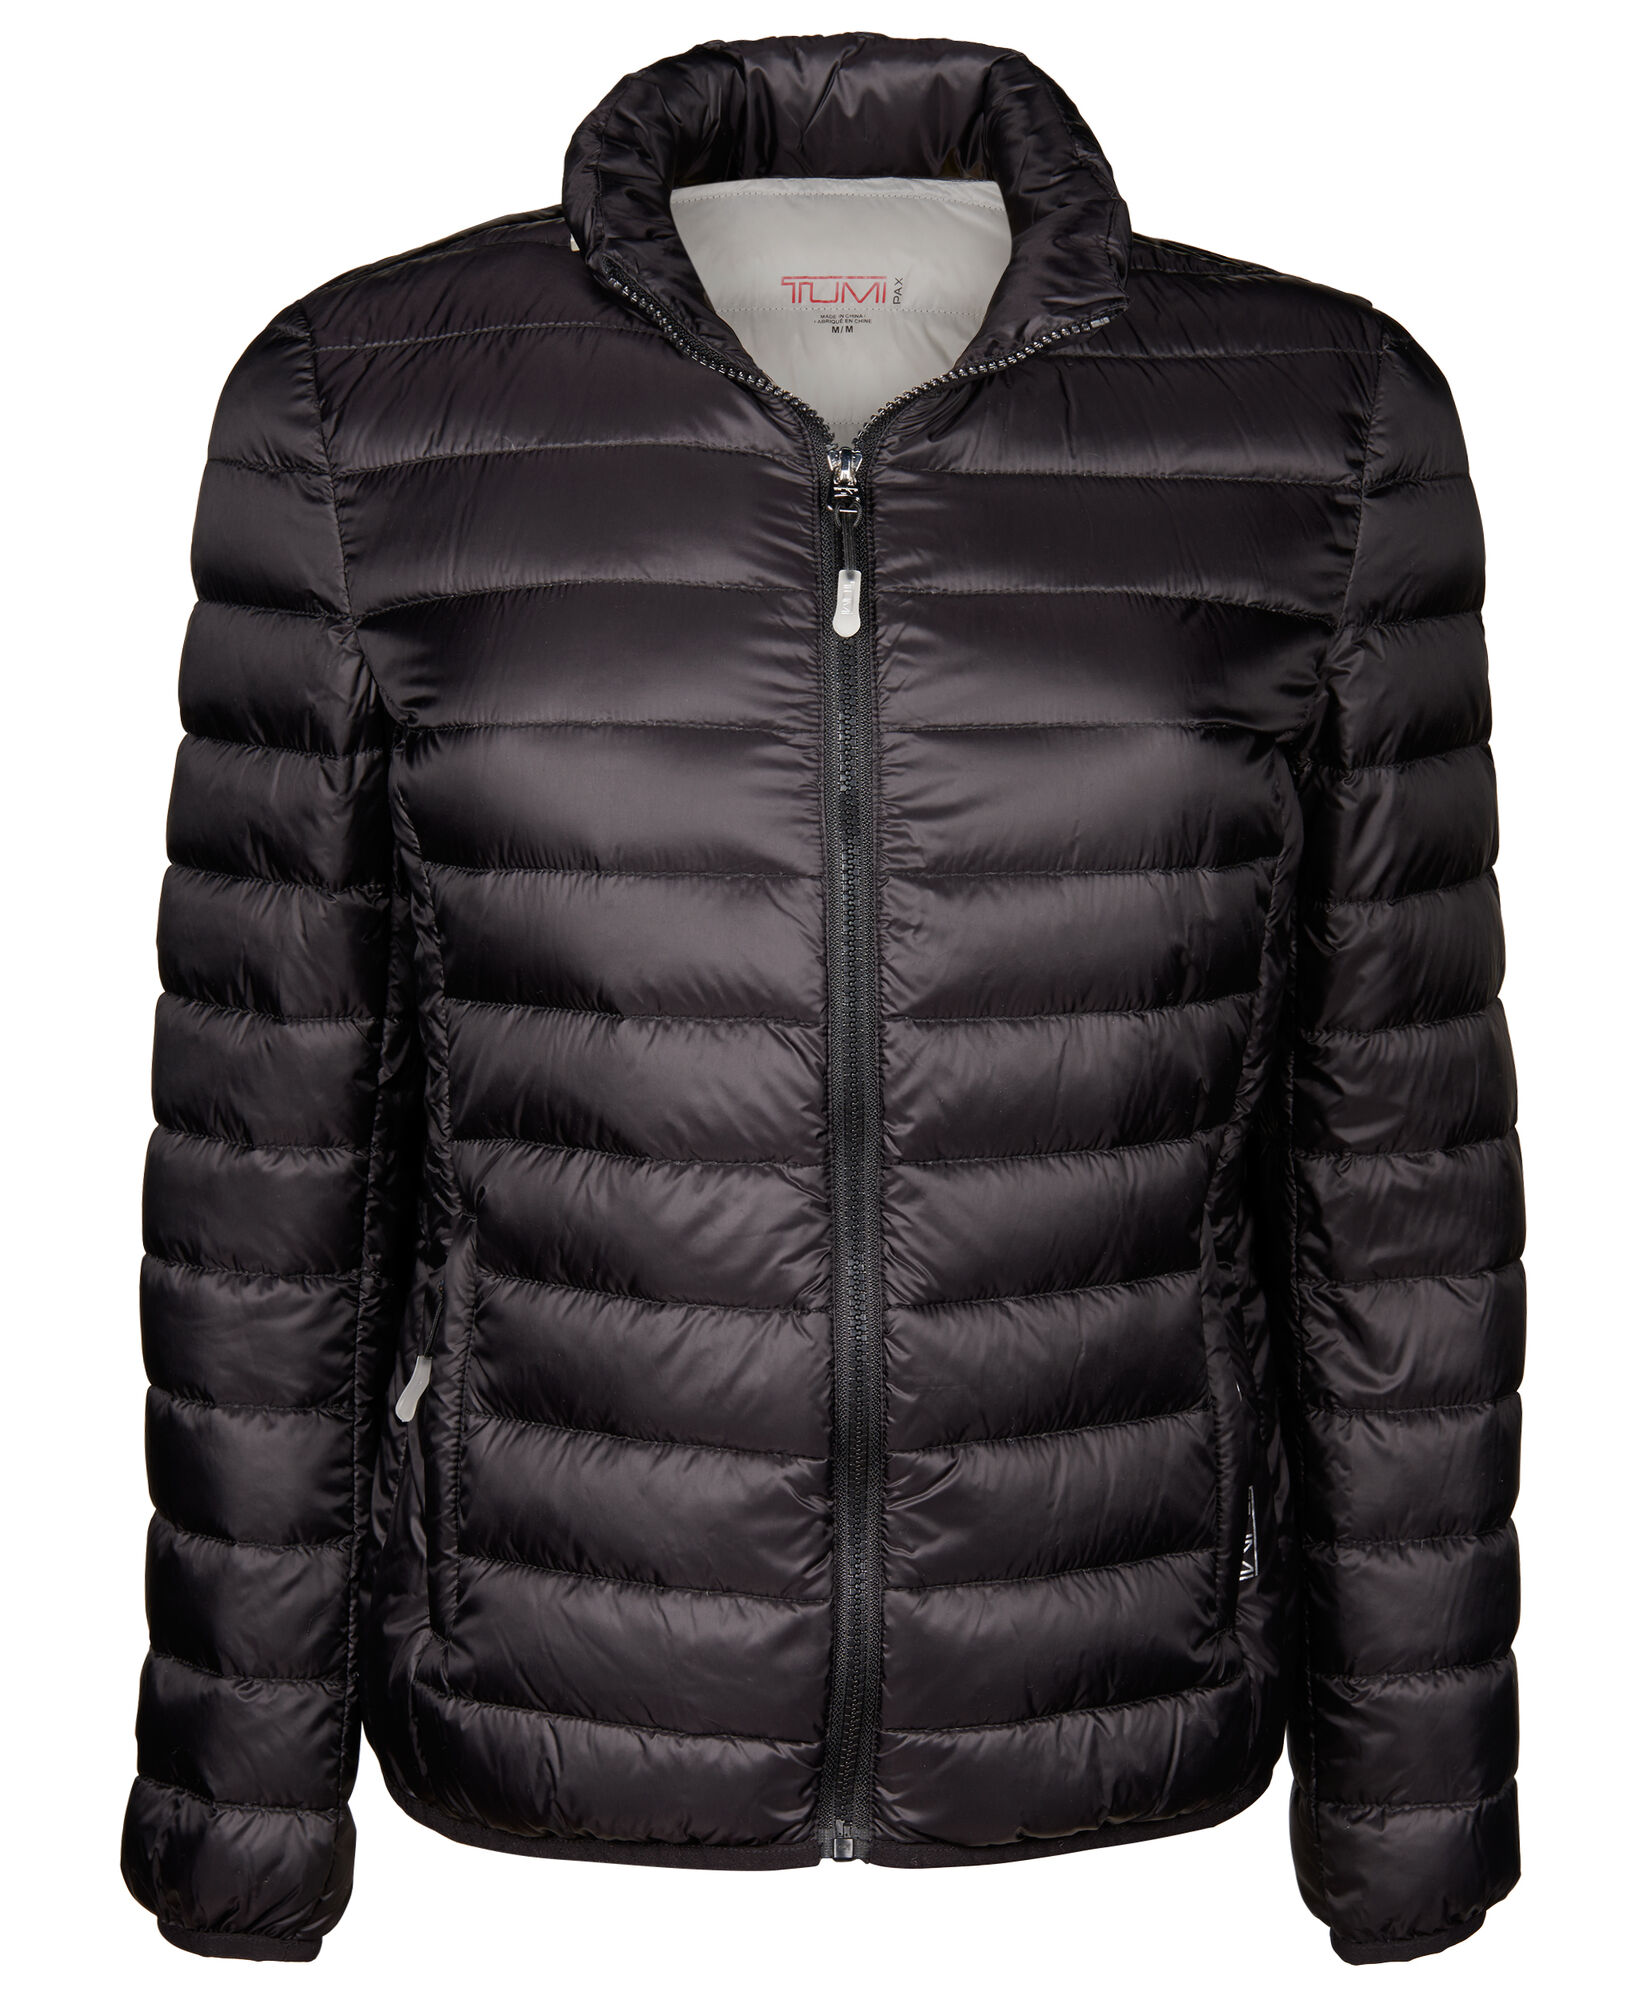 a44e4a78bfb Women's - Clairmont Packable Travel Puffer Jacket TUMIPAX Outerwear